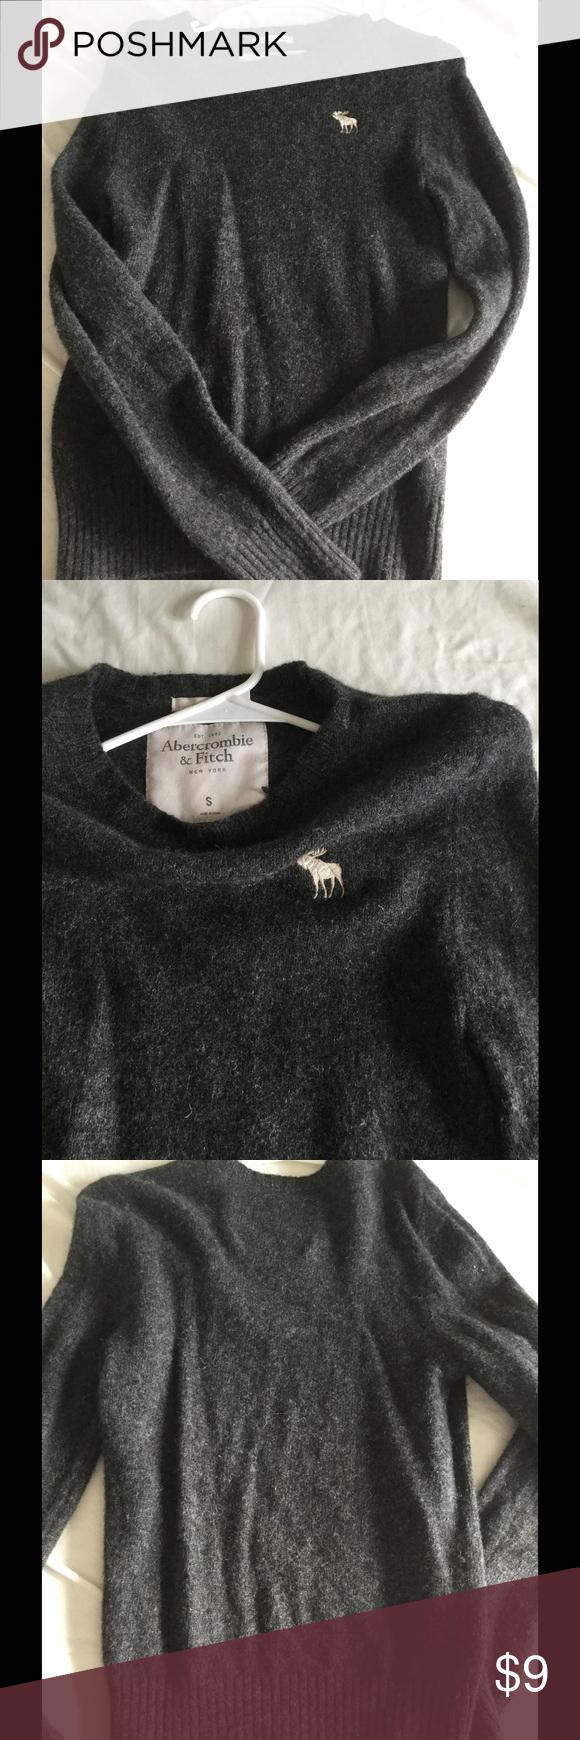 Man sweater Used , in good condition,,, Abercrombie & Fitch Sweaters Crewneck